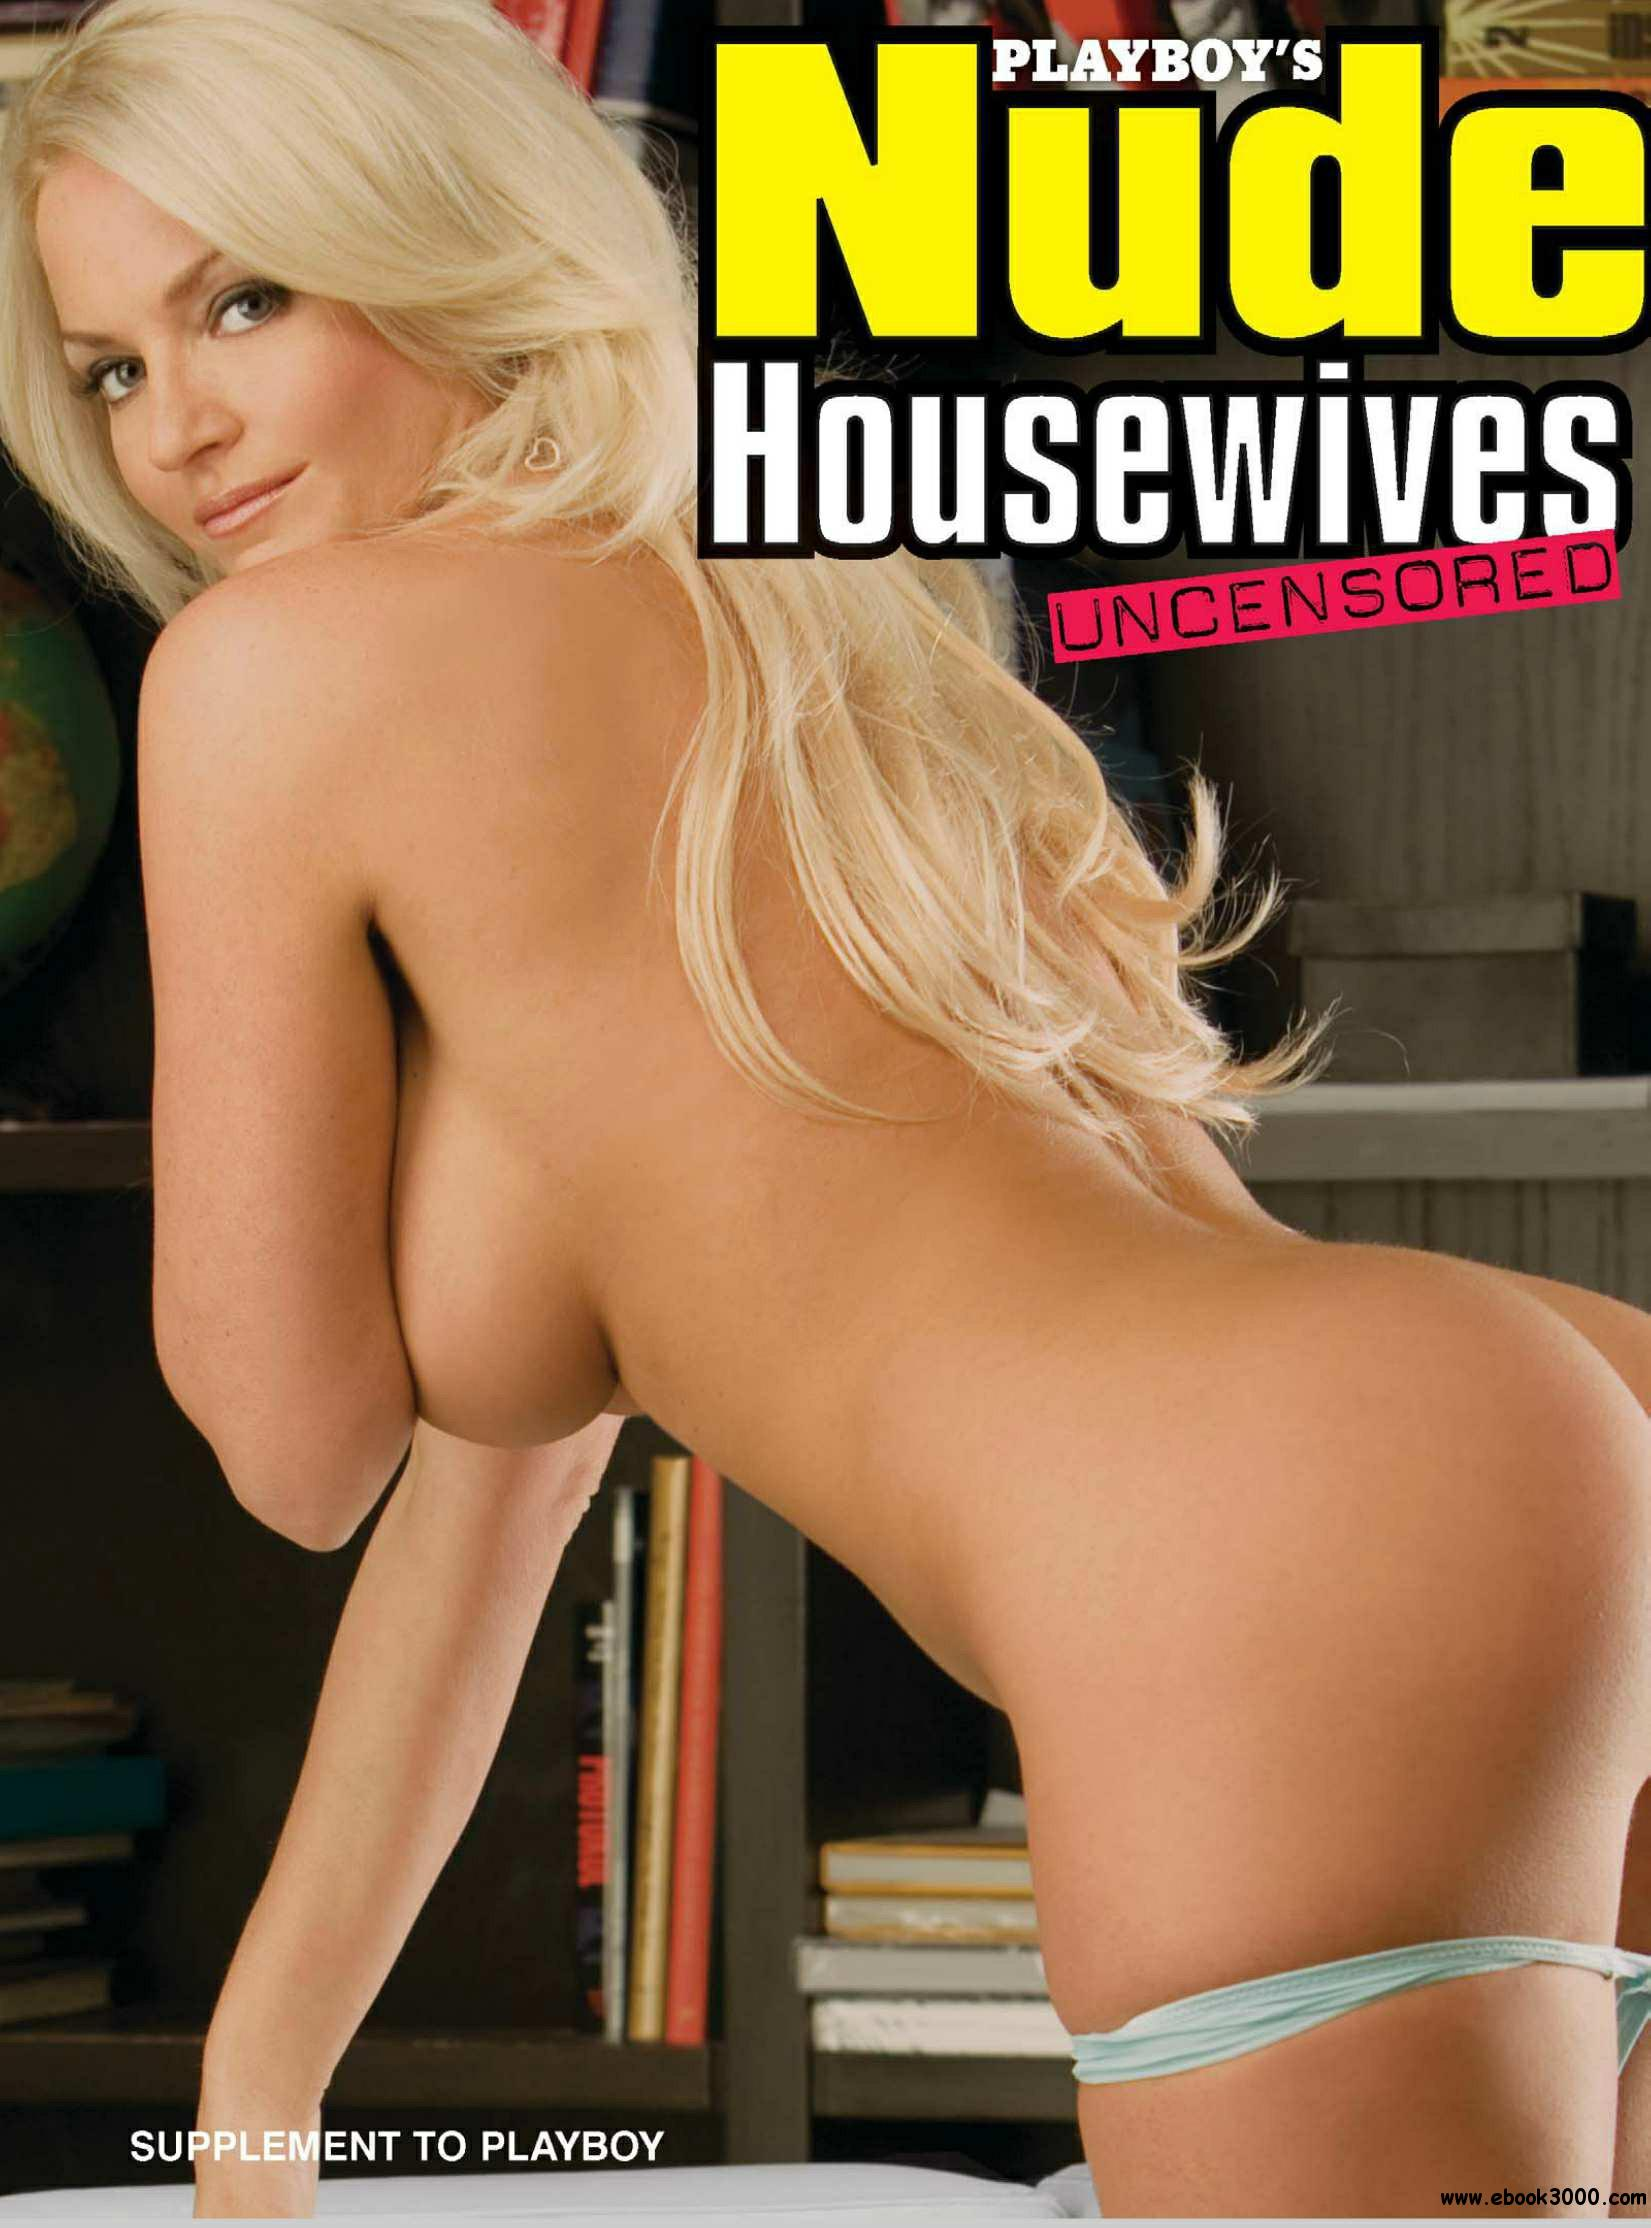 Playboy's Nude Housewives Uncensored 2009 free download